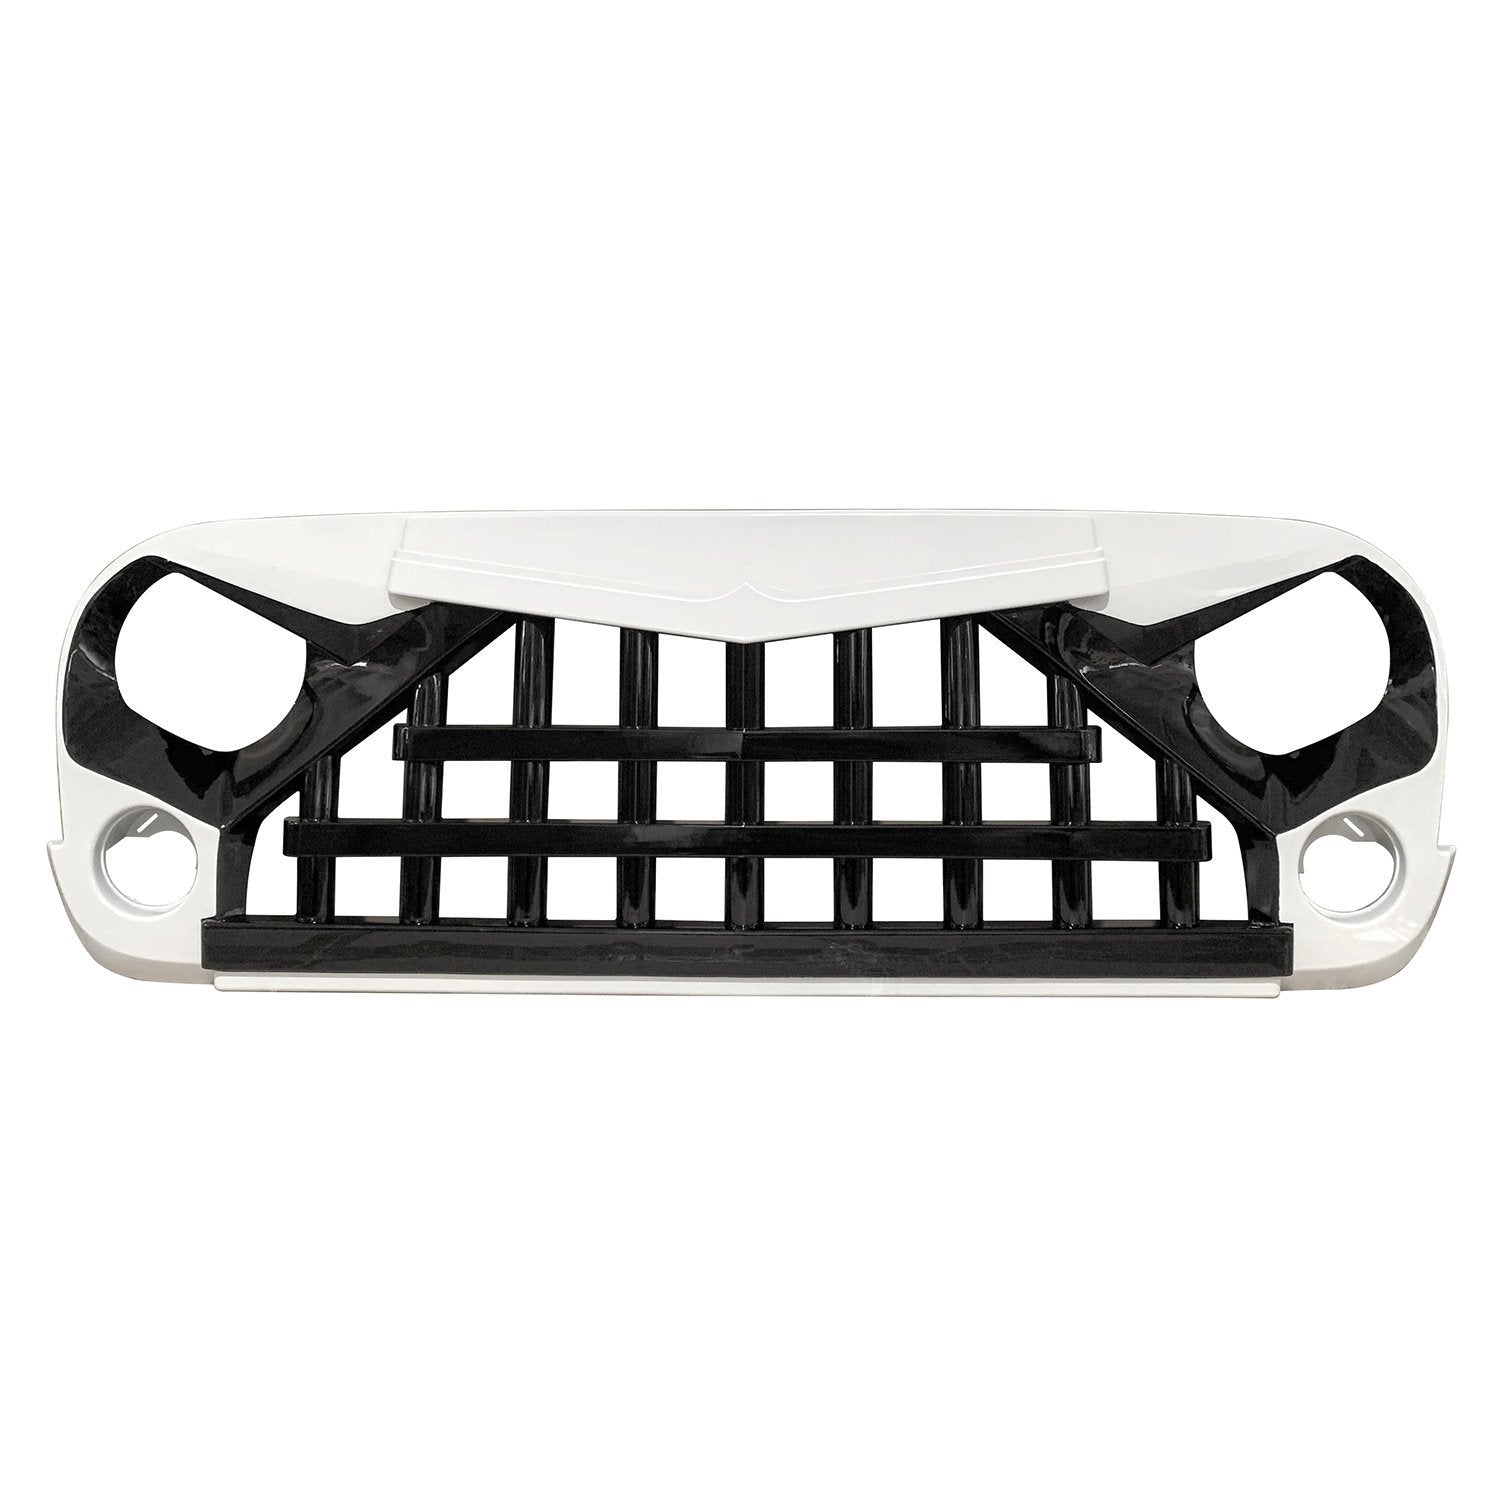 Glossy White&Black Knight Grill For Jeep Wrangler JK 07-18